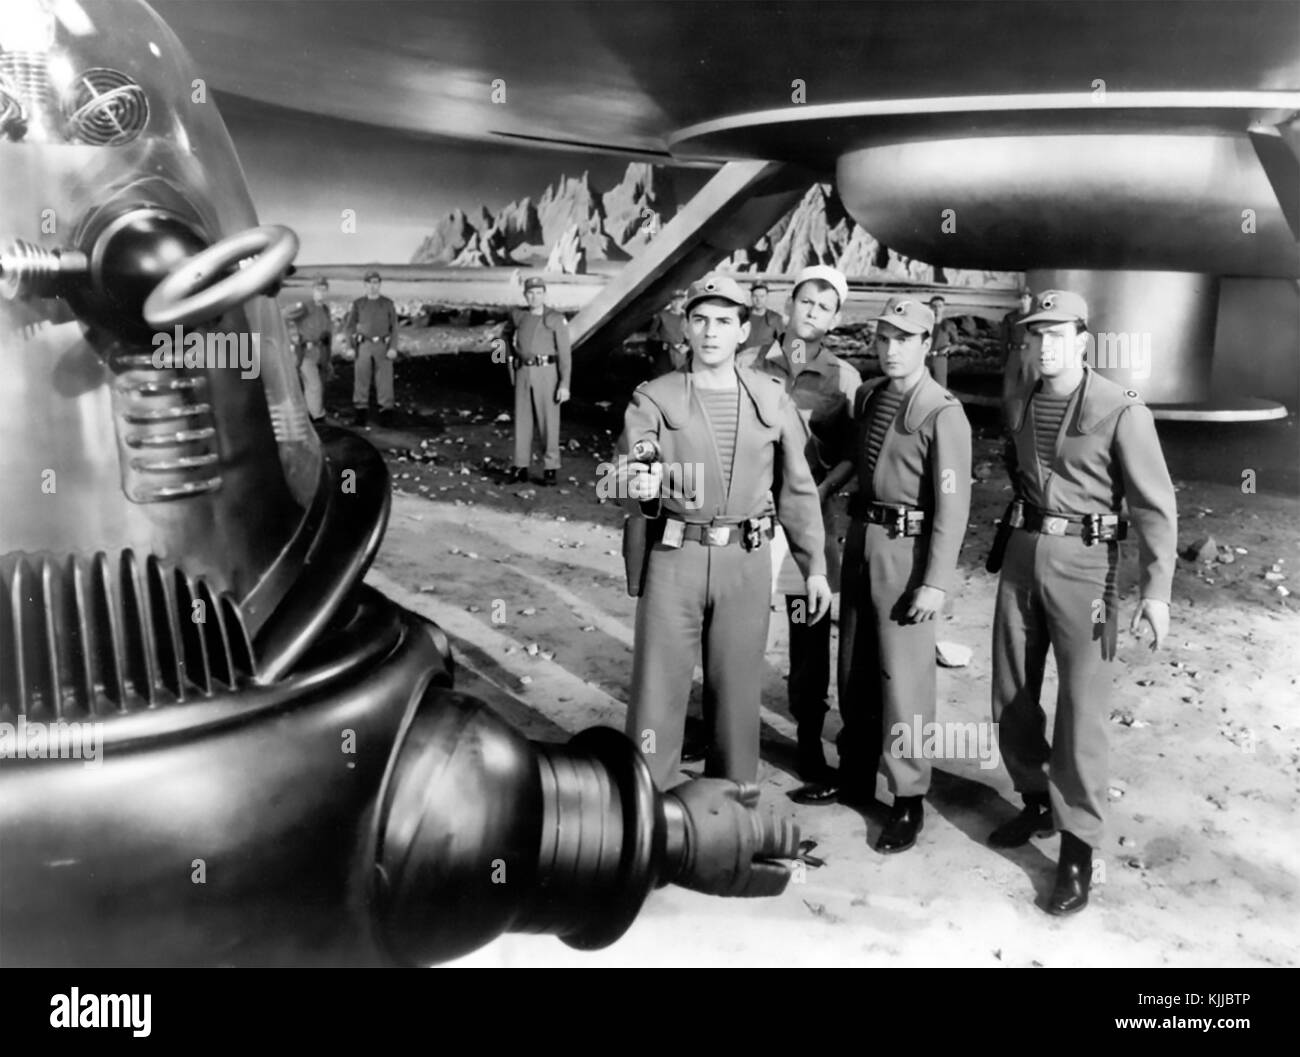 FORBIDDEN PLANET 1956 MGM science fiction film with Robby the Robot - Stock Image